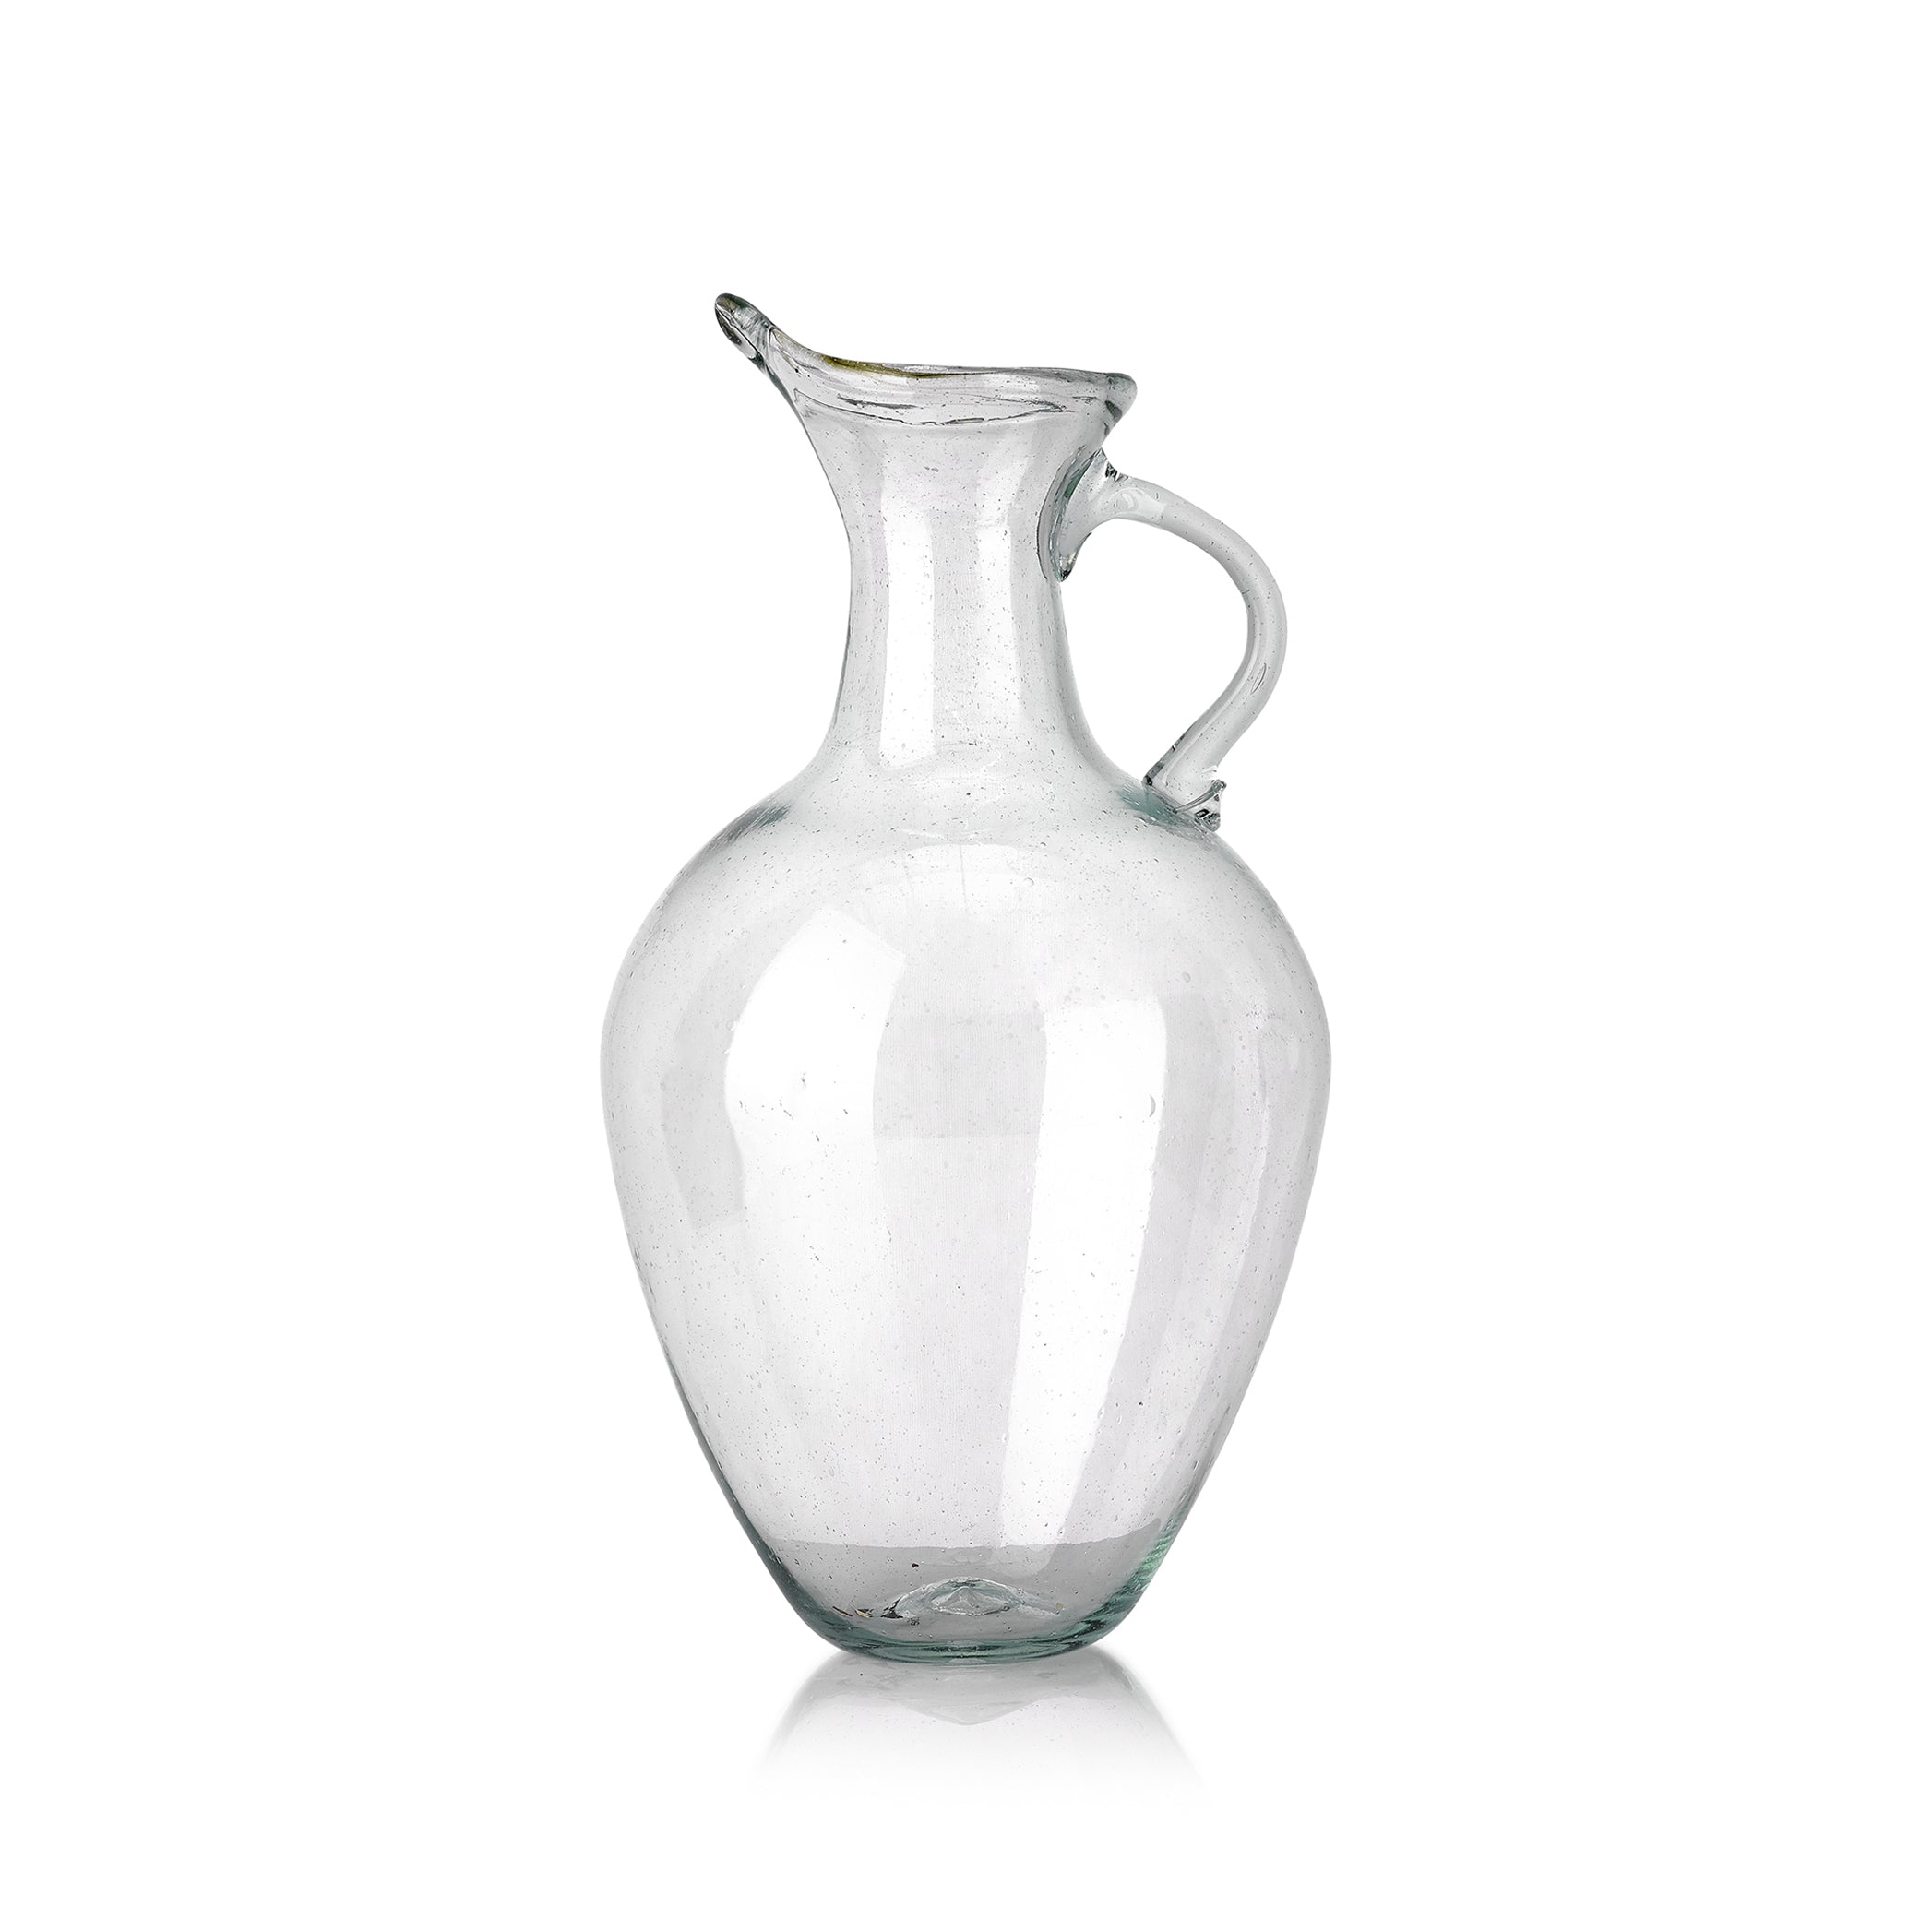 Handblown Glass Teardrop Jug with Handle